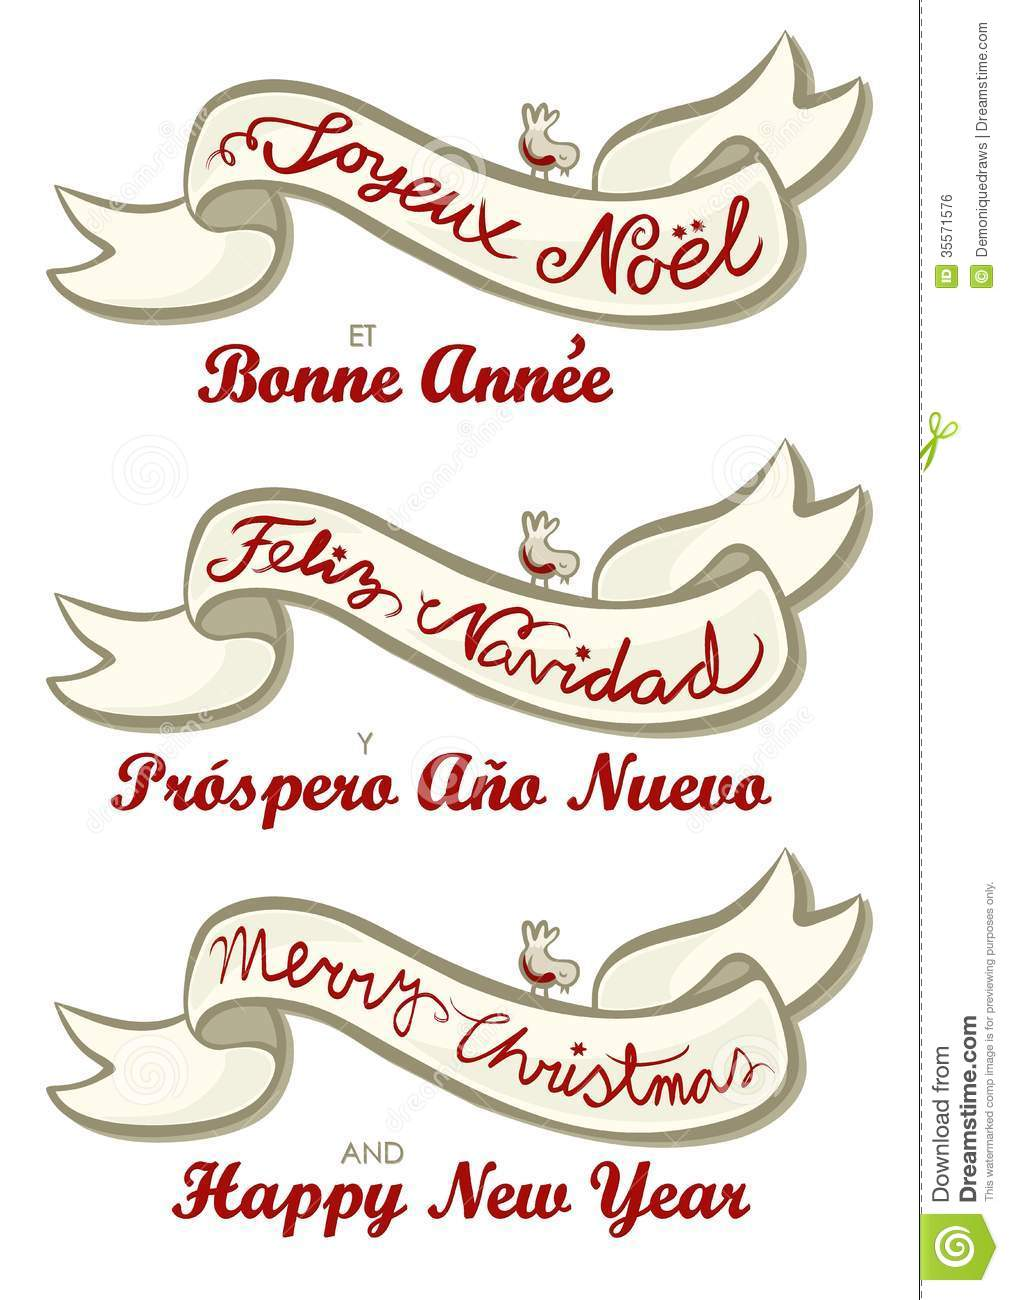 merry christmas and happy new year english and spanish - Merry Christmas And Happy New Year In Spanish